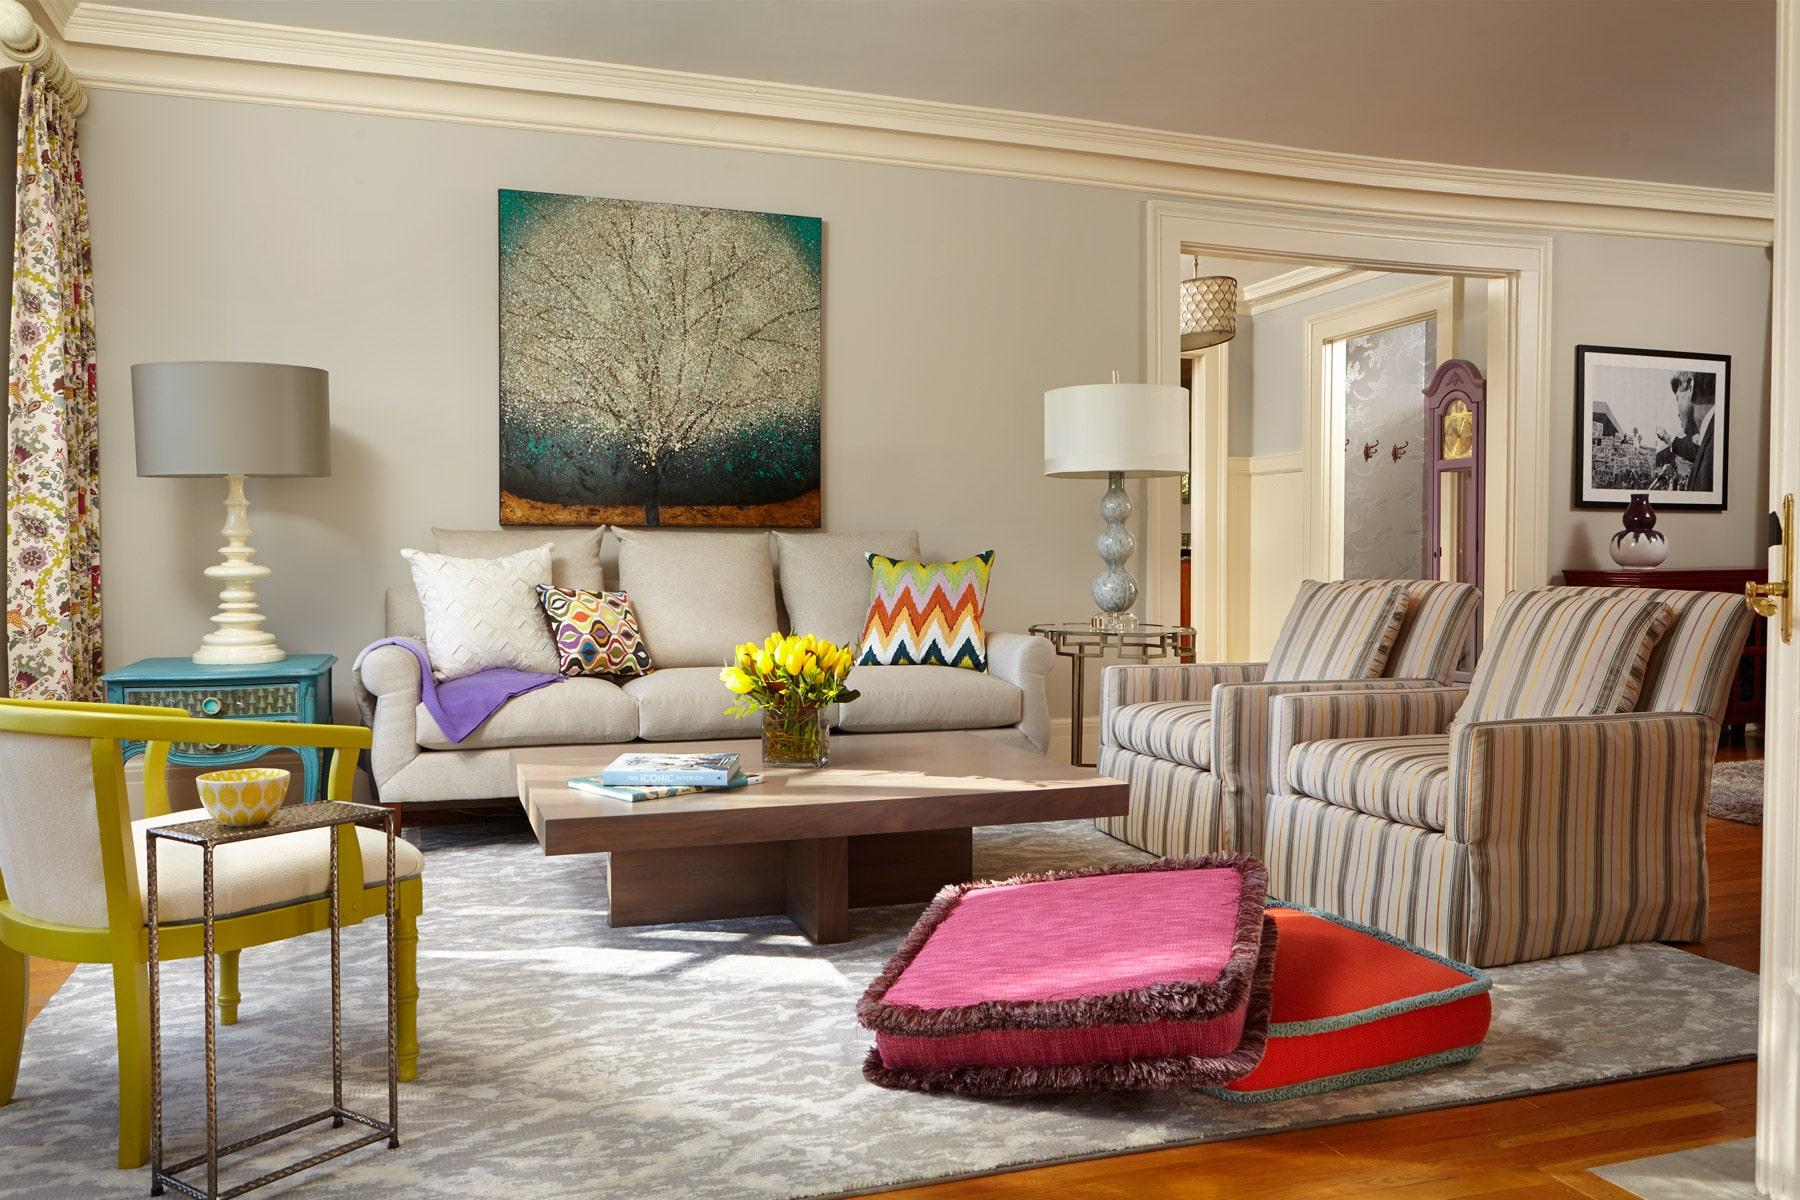 Eclectic-Renovated-Home-Gray-Living-Room-Minneapolis-interior-designer.jpg